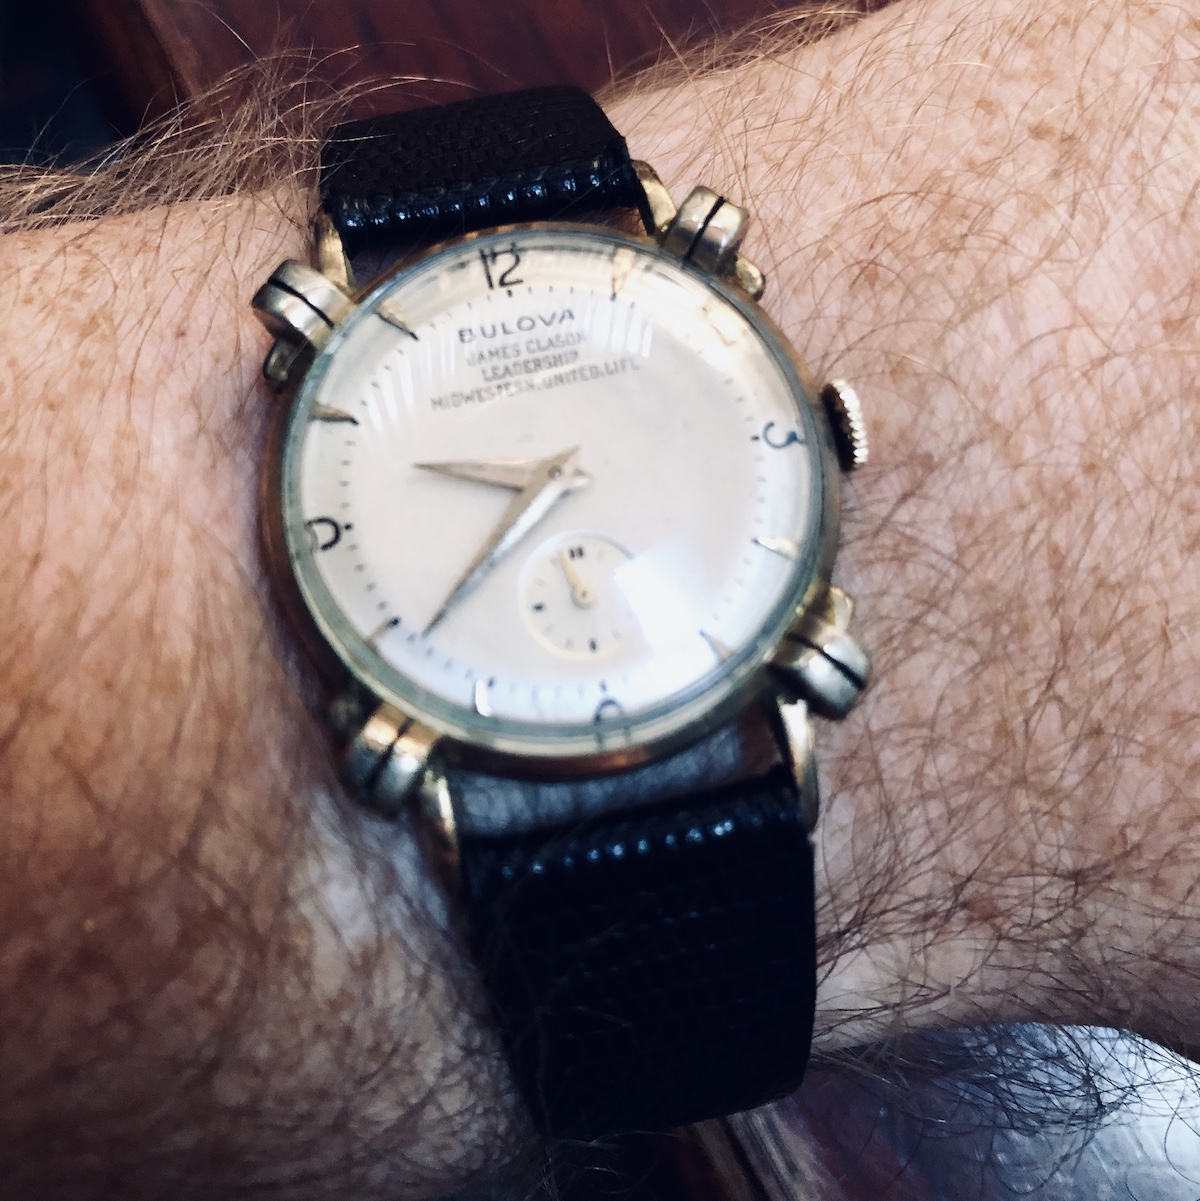 A picture of a 1953 Bulova Jordan watch on my wrist. The watch is gold with a champagne colored face. The watch has a small case (about 34mm) and black , 17mm strap.